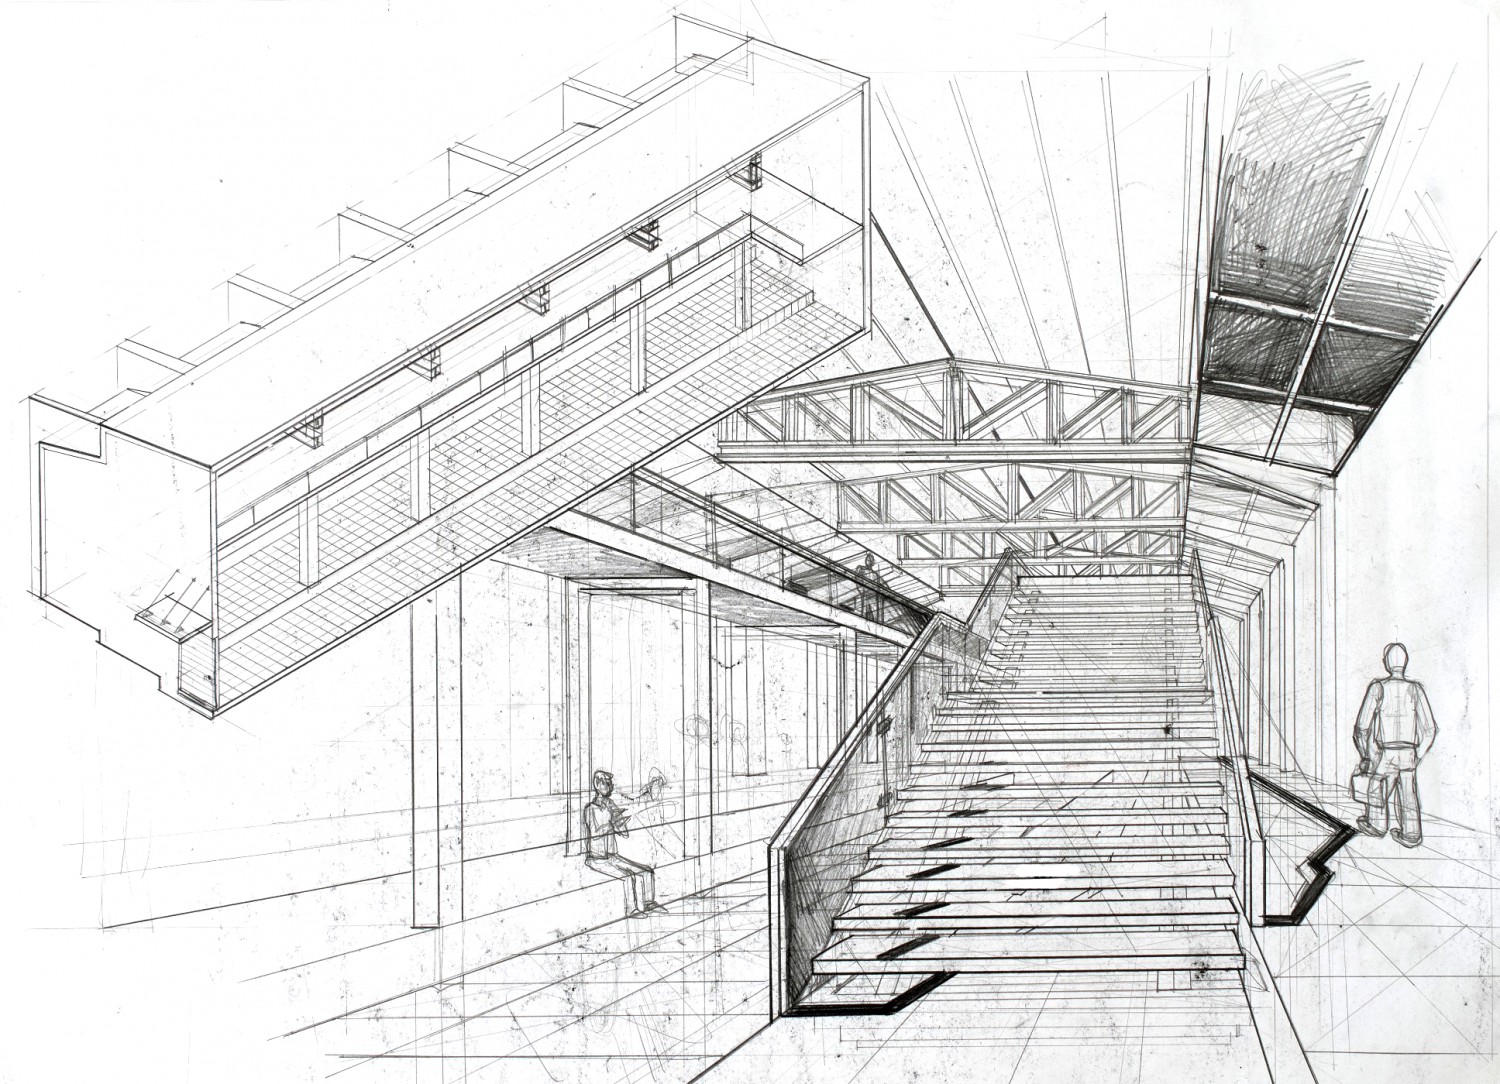 architecture interior perspective architectural drawing